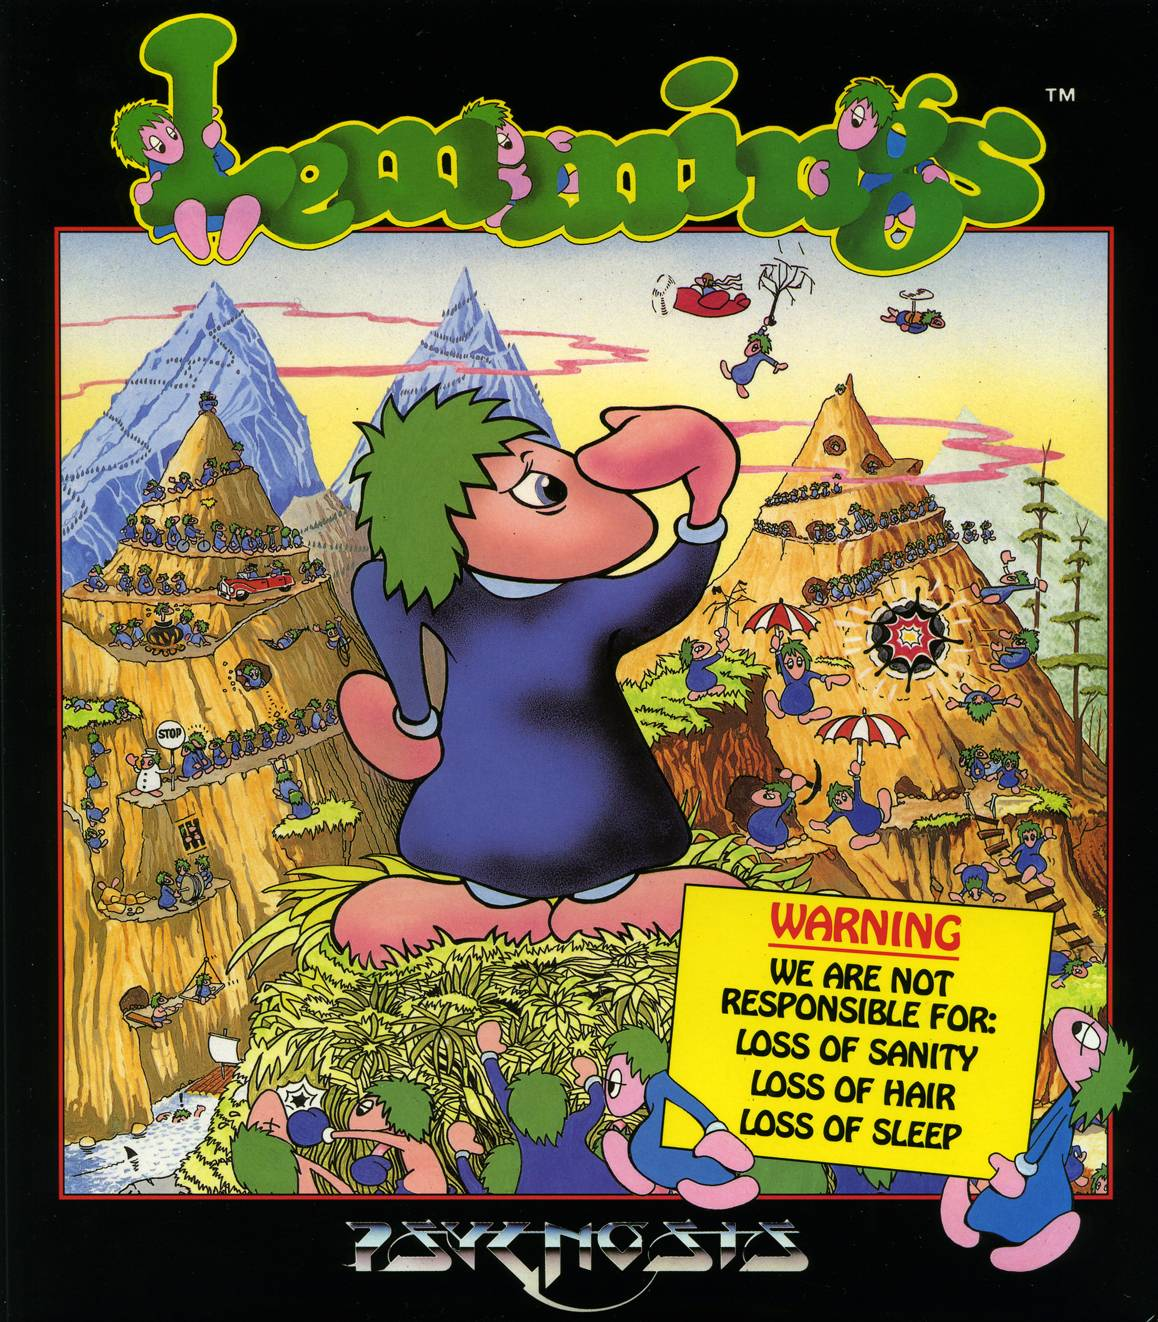 The green hair and blue-shod Lemmings splat all over the cover of this classic game